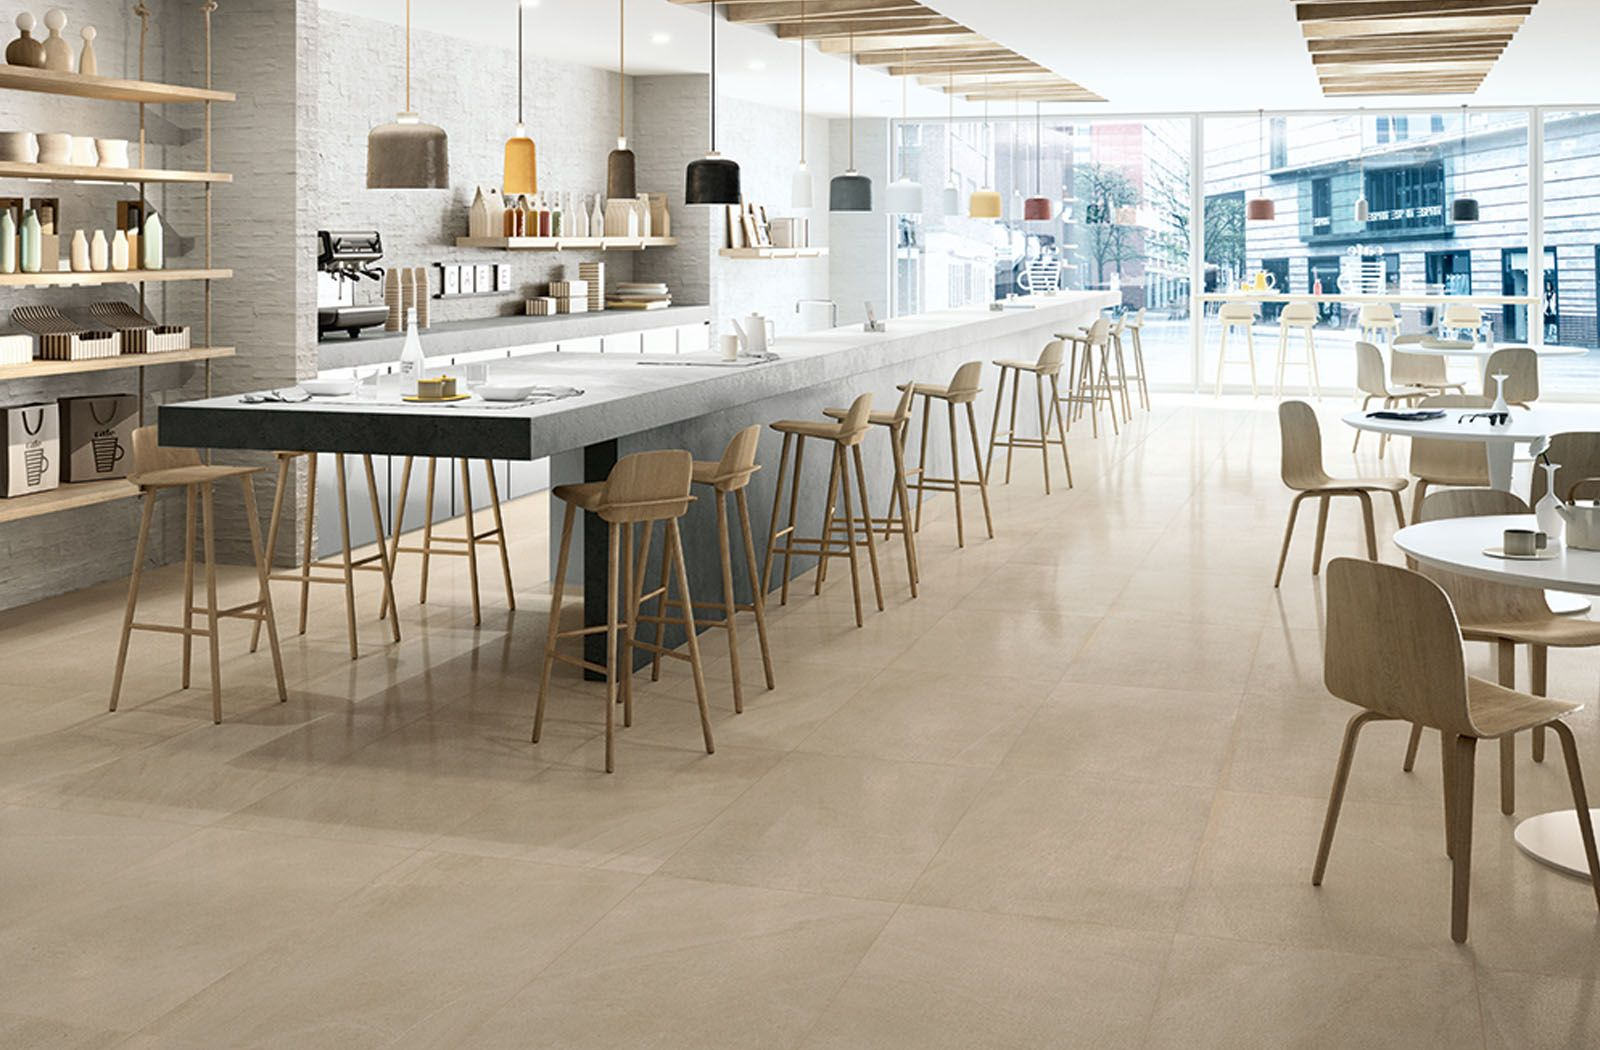 simple and neat cafe decor floor tile from limestone collection by cotto deste